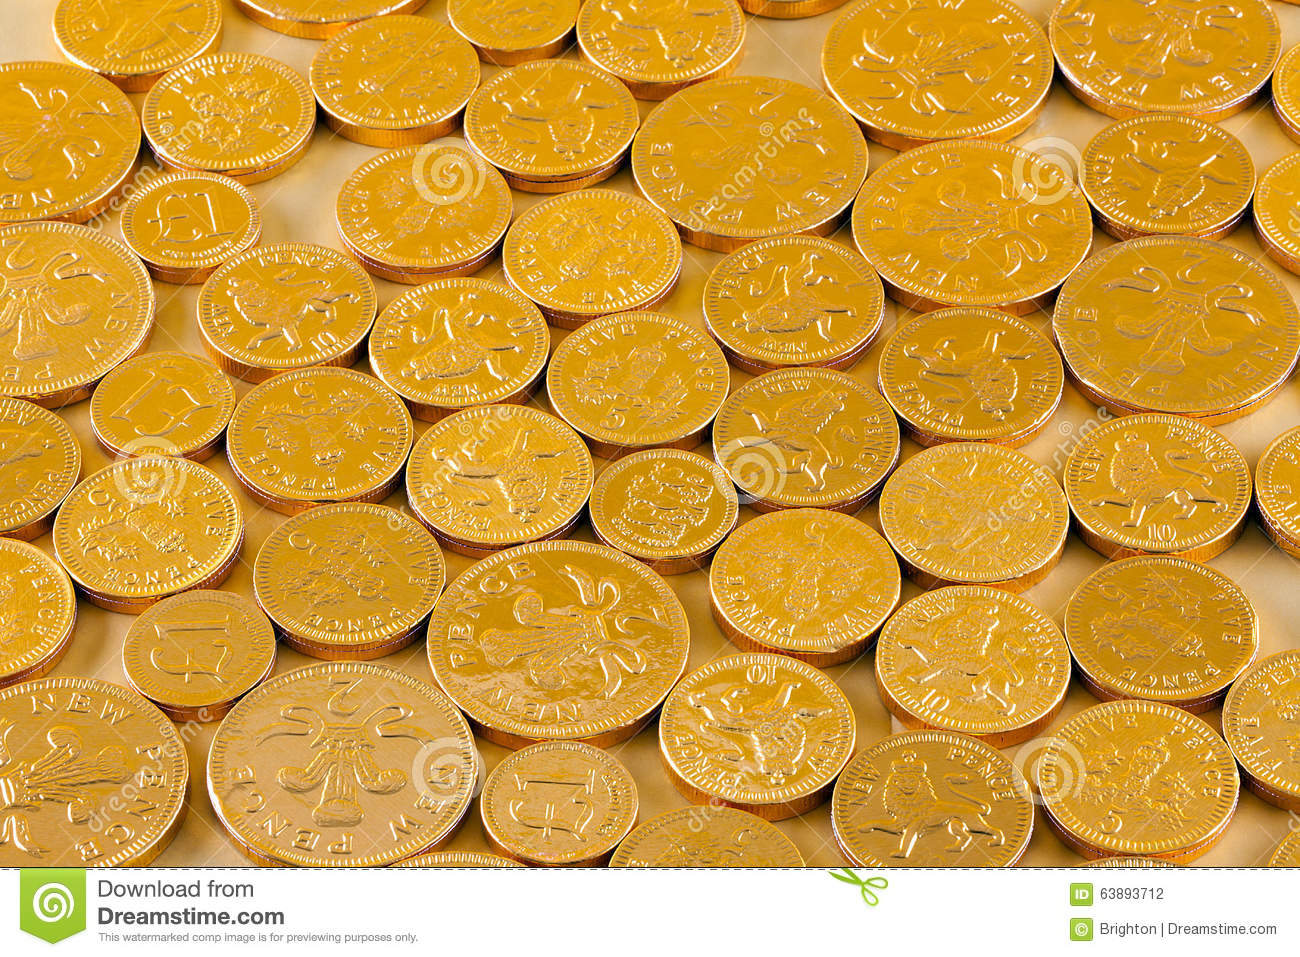 Chocolate Coins Stock Photo - Image: 63893712